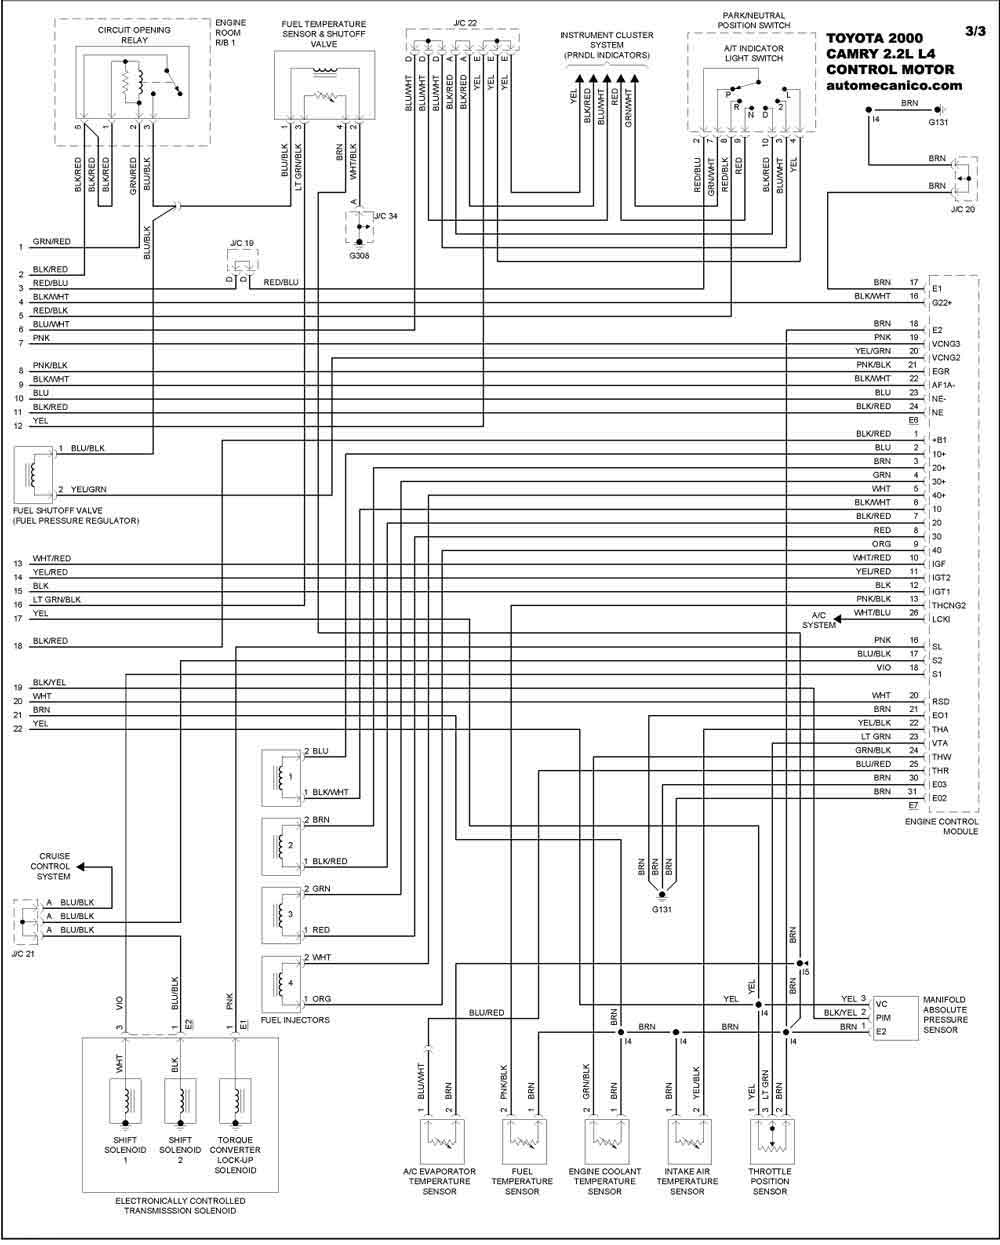 Diagram  Toyota Corolla 86 Diagrama Computadora Full Version Hd Quality Diagrama Computadora